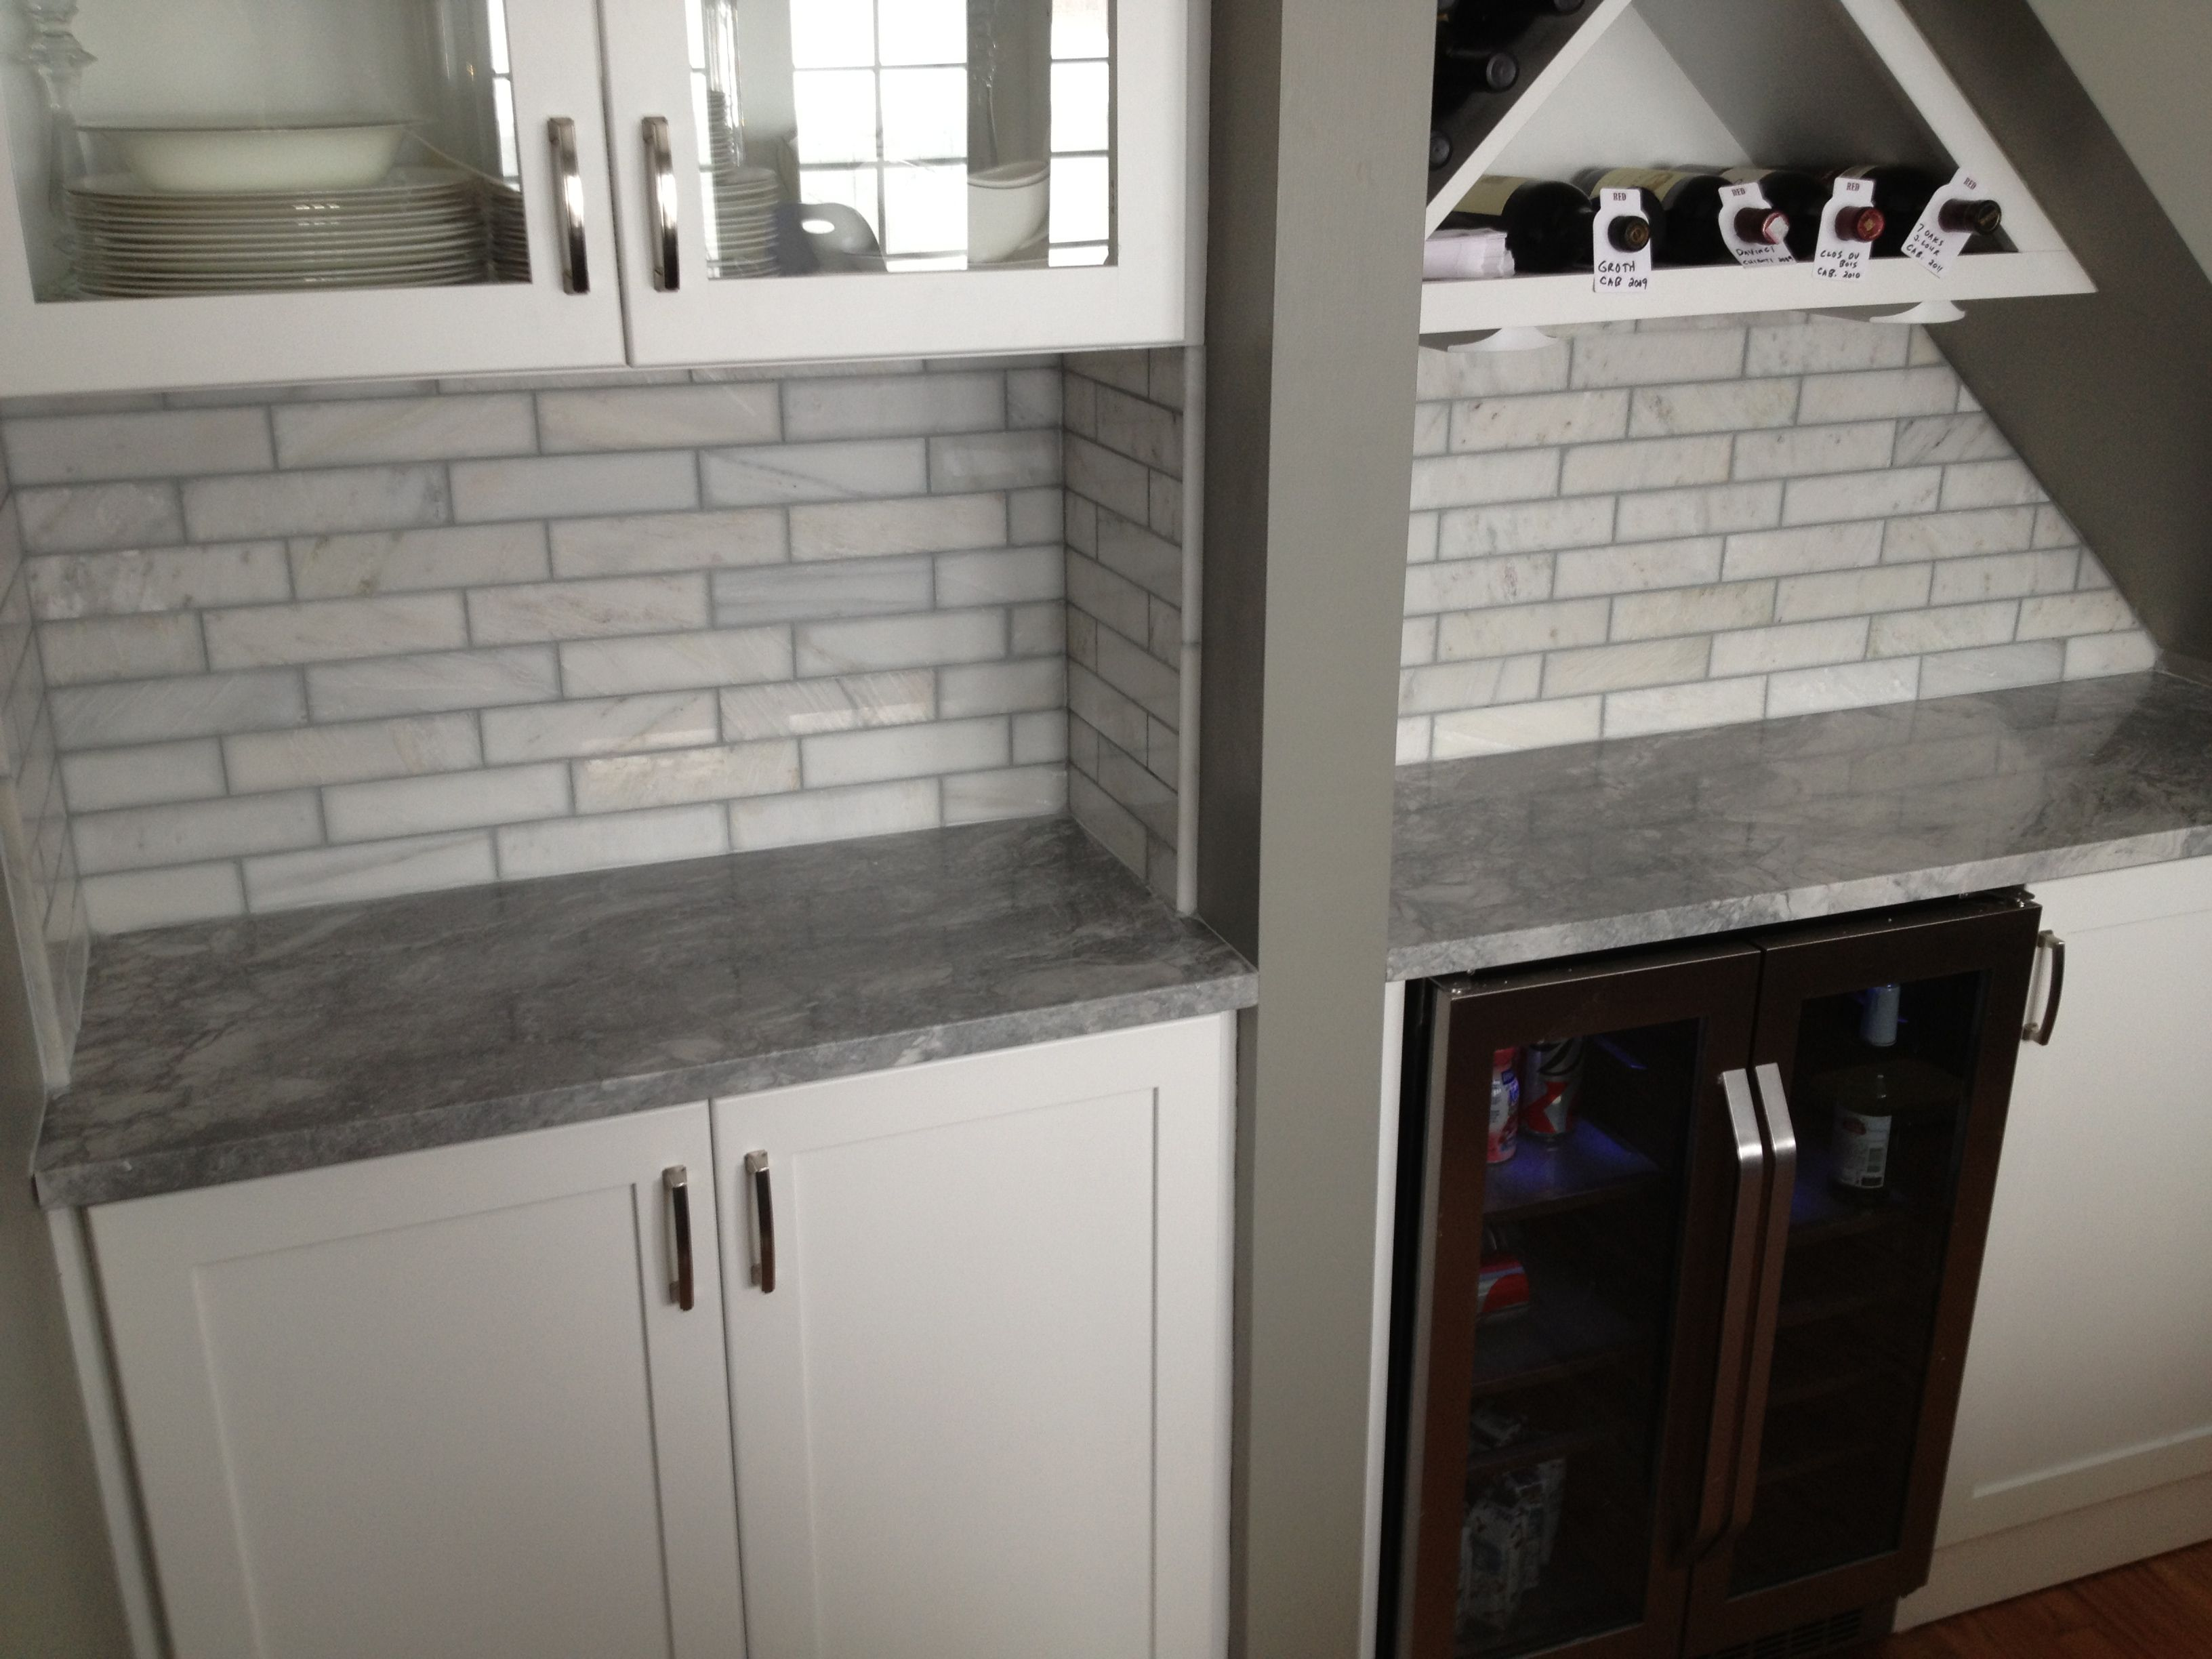 2x8 marble tile backsplash we installed in a home in Chicago